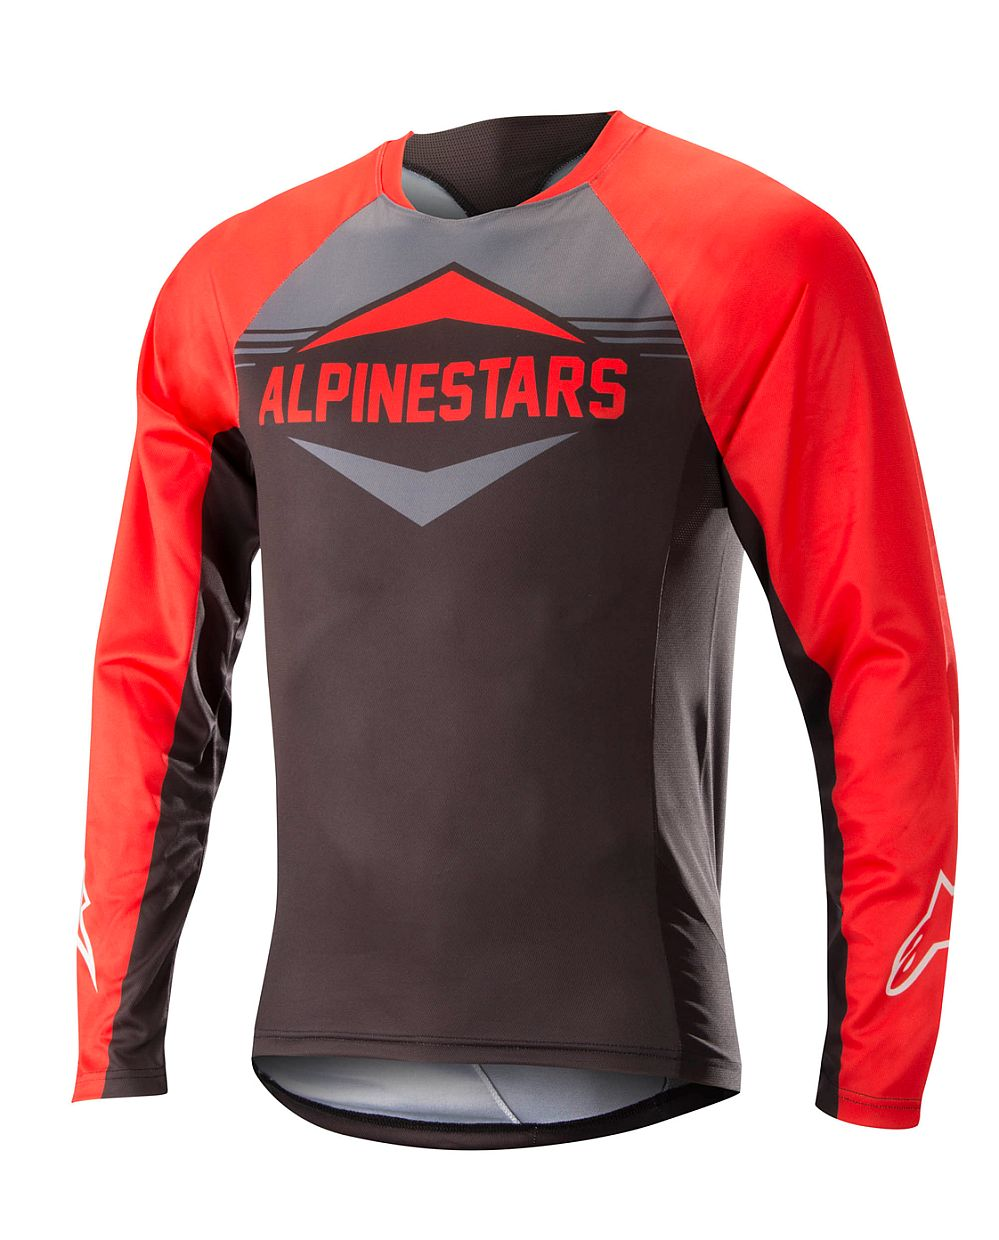 Alpinestars Mesa LS Jersey dres Red Steel Gray